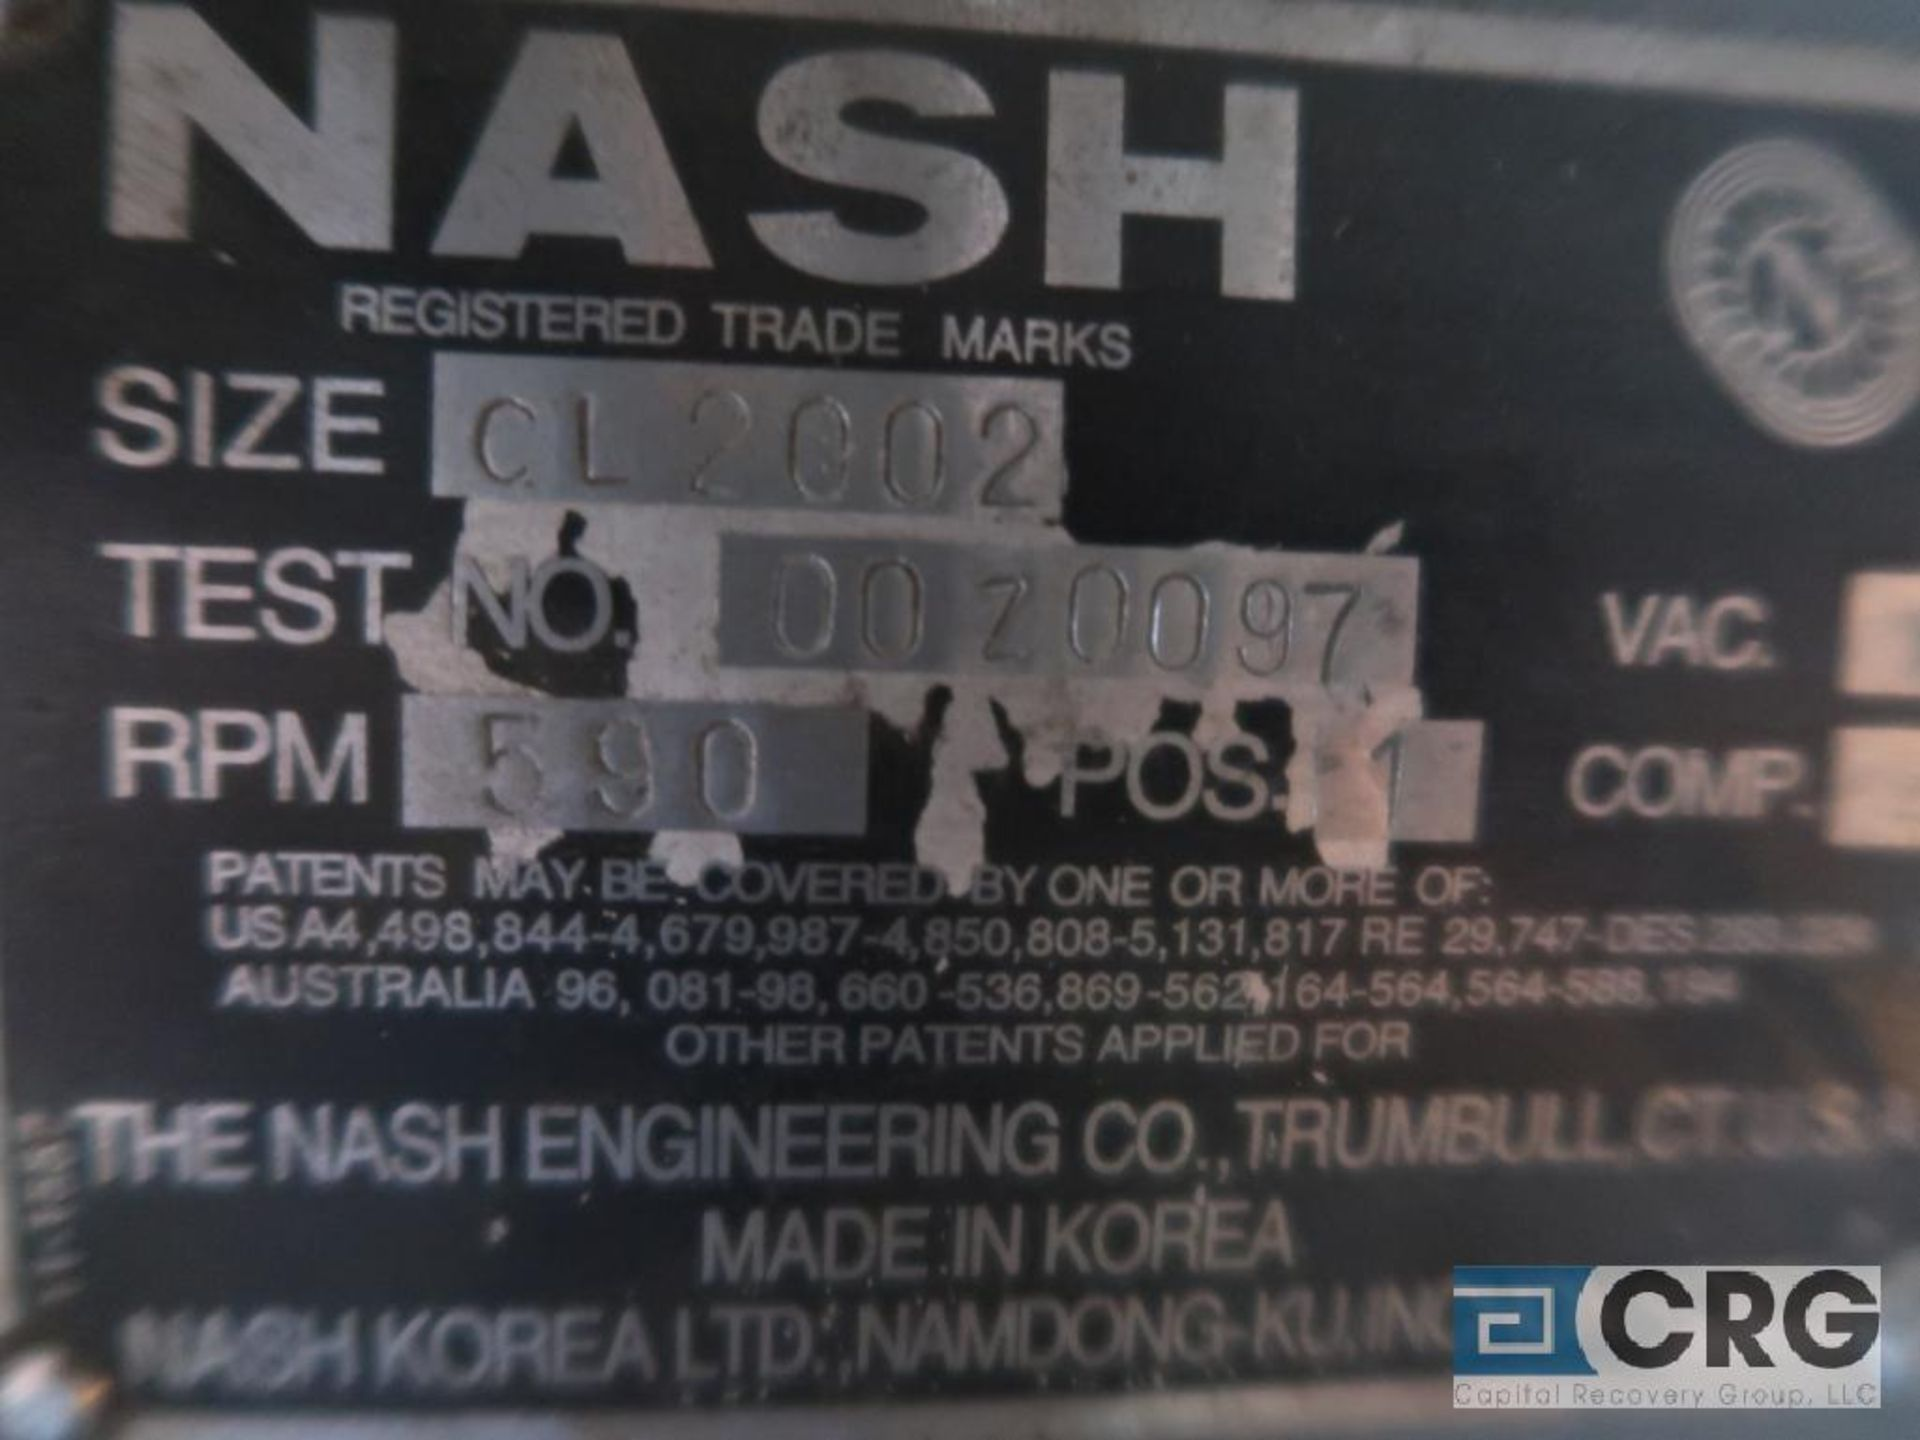 Nash CL1002 vacuum pump, remanufactured, s/n 0020097 (Off Site Warehouse) - Image 2 of 2